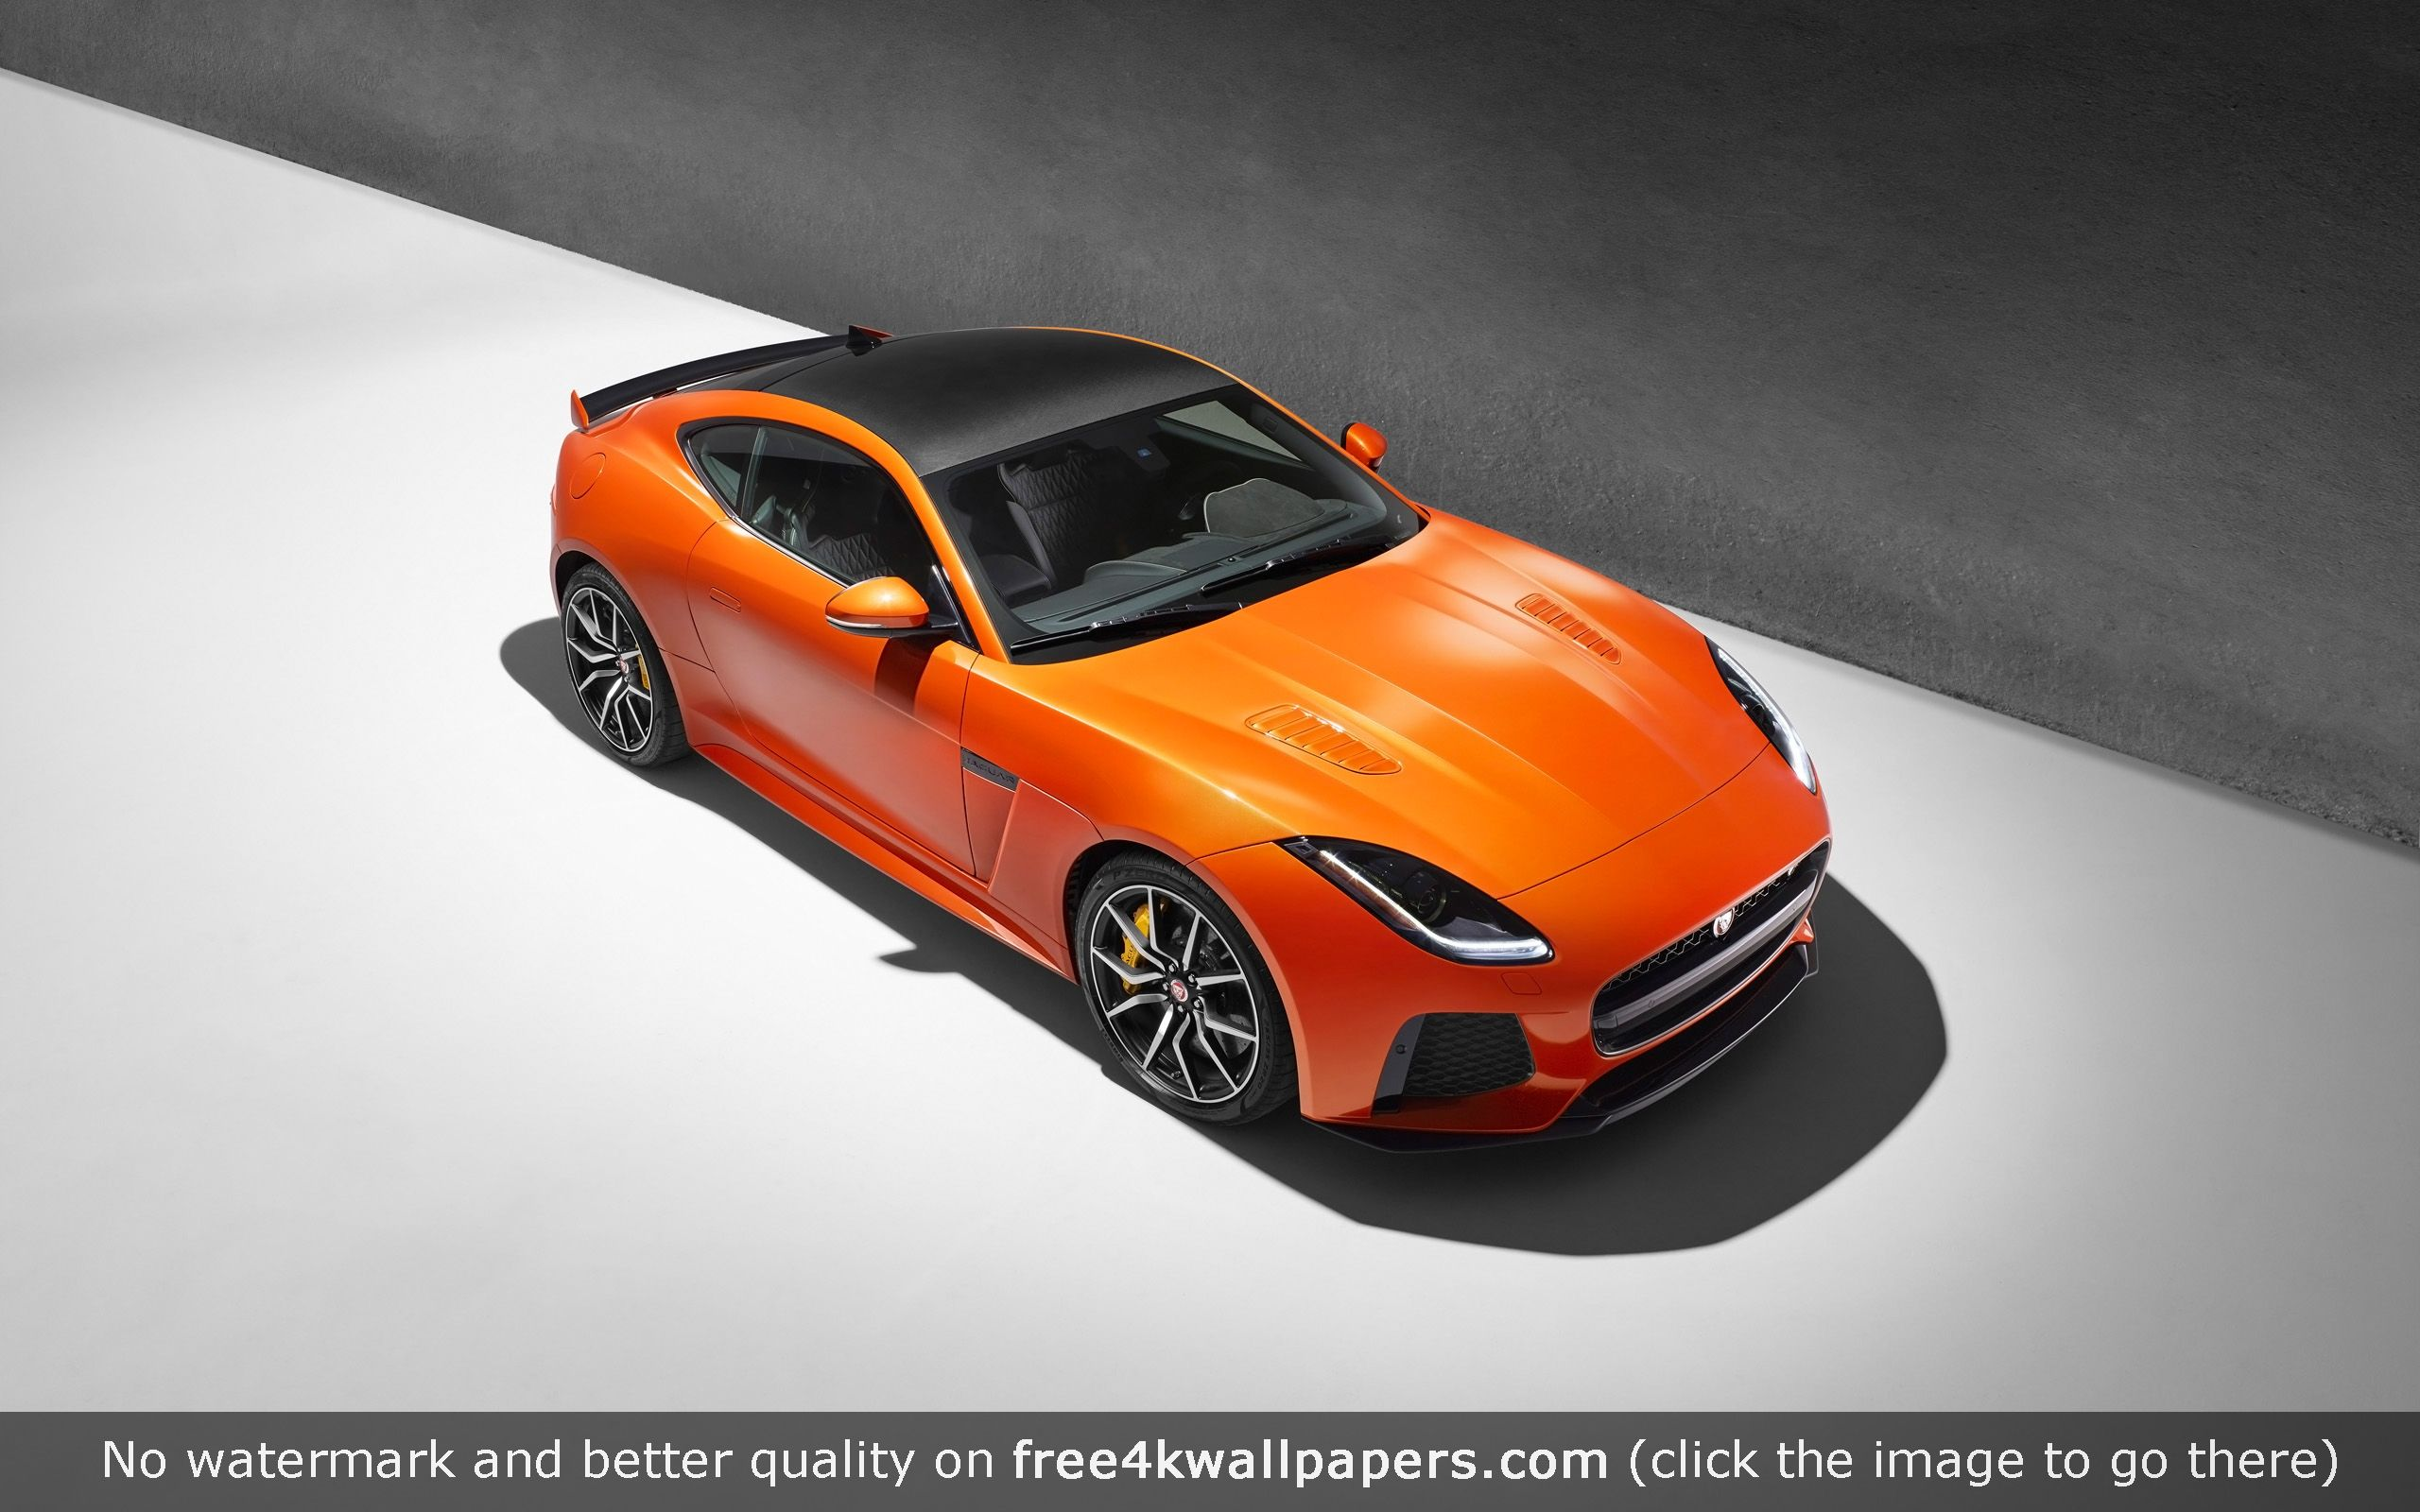 Jaguar f type svr coupe 4k or hd wallpaper for your pc mac or mobile